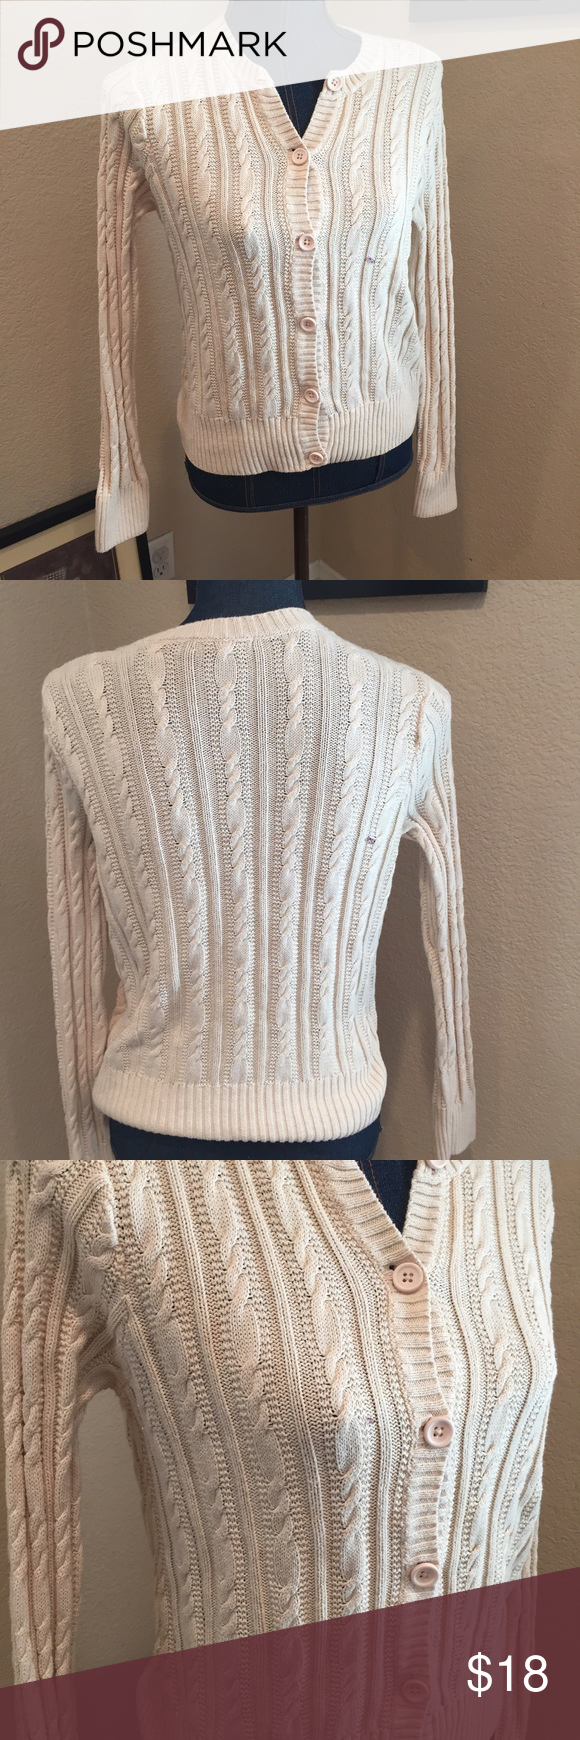 Jeanne Pierre cable cardigan sweater   Cable, Cotton and Customer ...